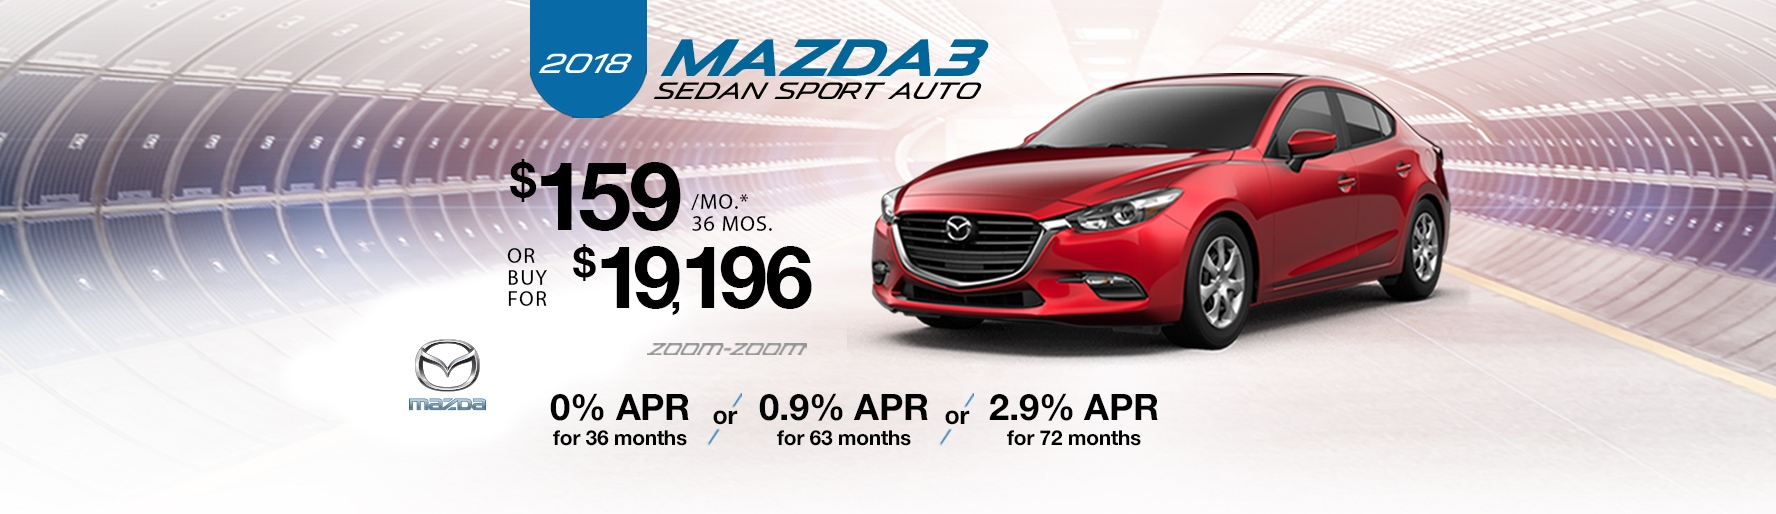 2018 Mazda3 Sedan Sport Auto Lease Special at Liberty Mazda